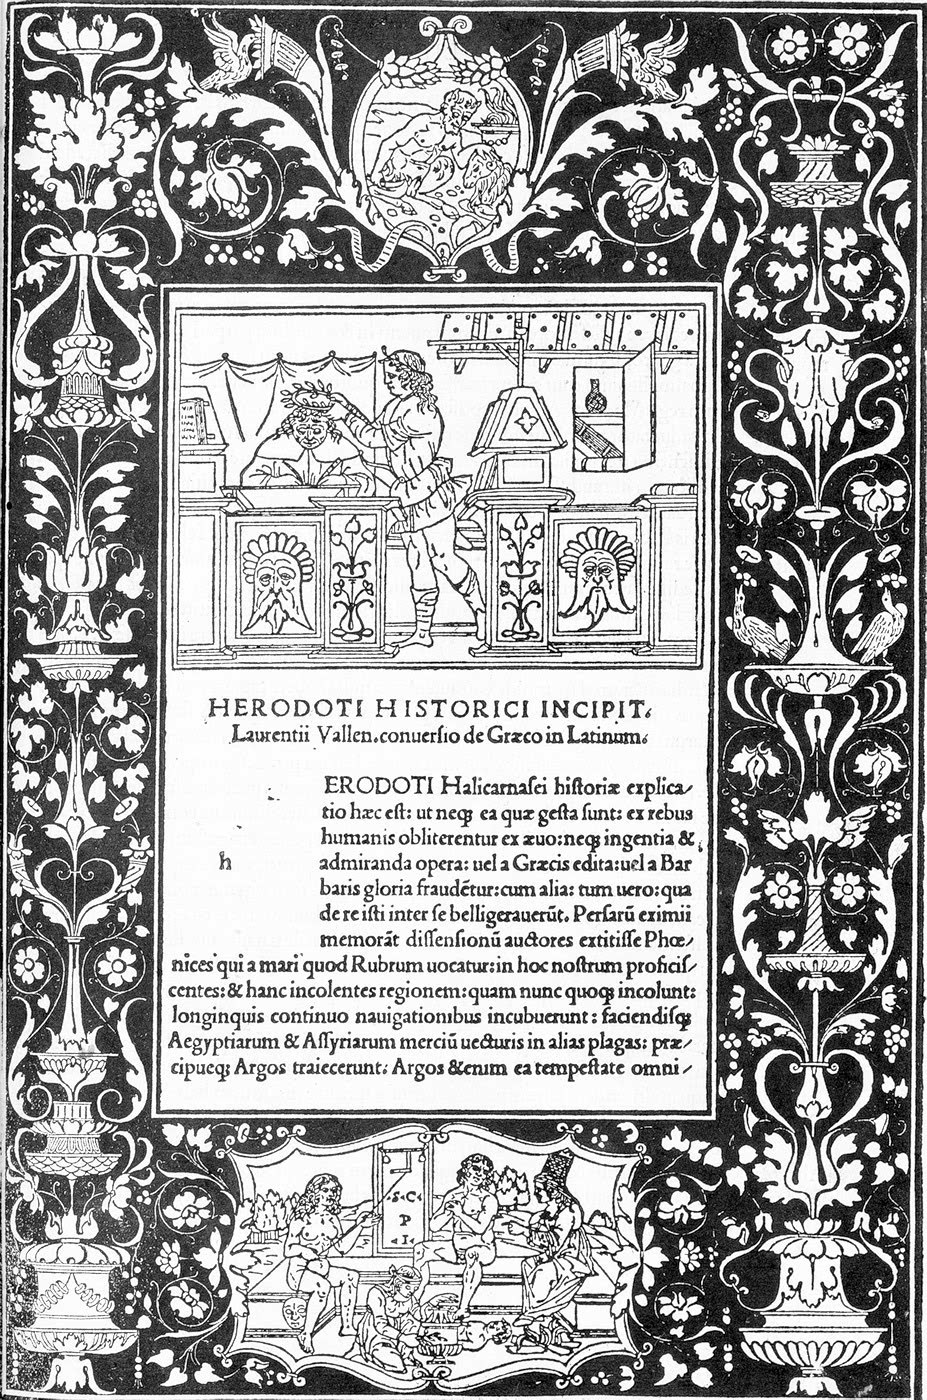 Dedication page for the Historiae by Herodotus printed at Venice 1494